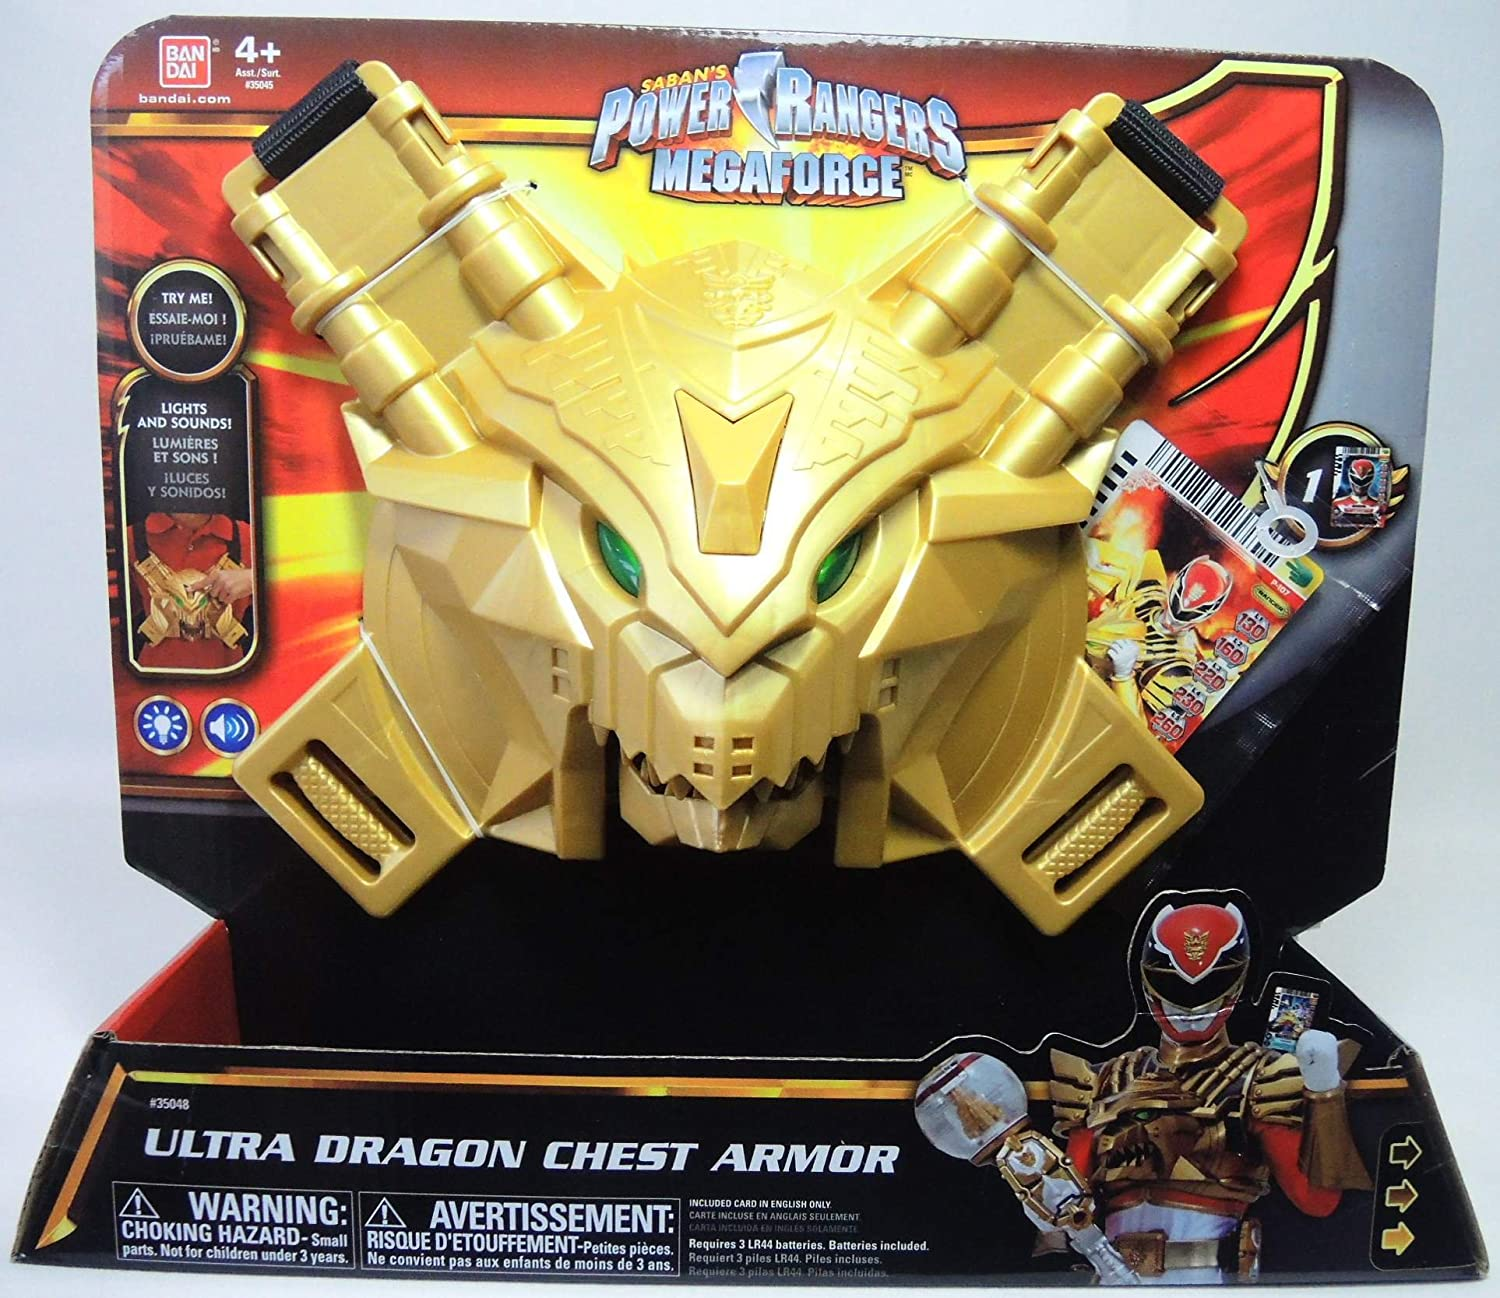 Amazon Com Power Rangers Megaforce Ultra Dragon Chest Armor Toys Games The answers to all of these are different. power rangers megaforce ultra dragon chest armor